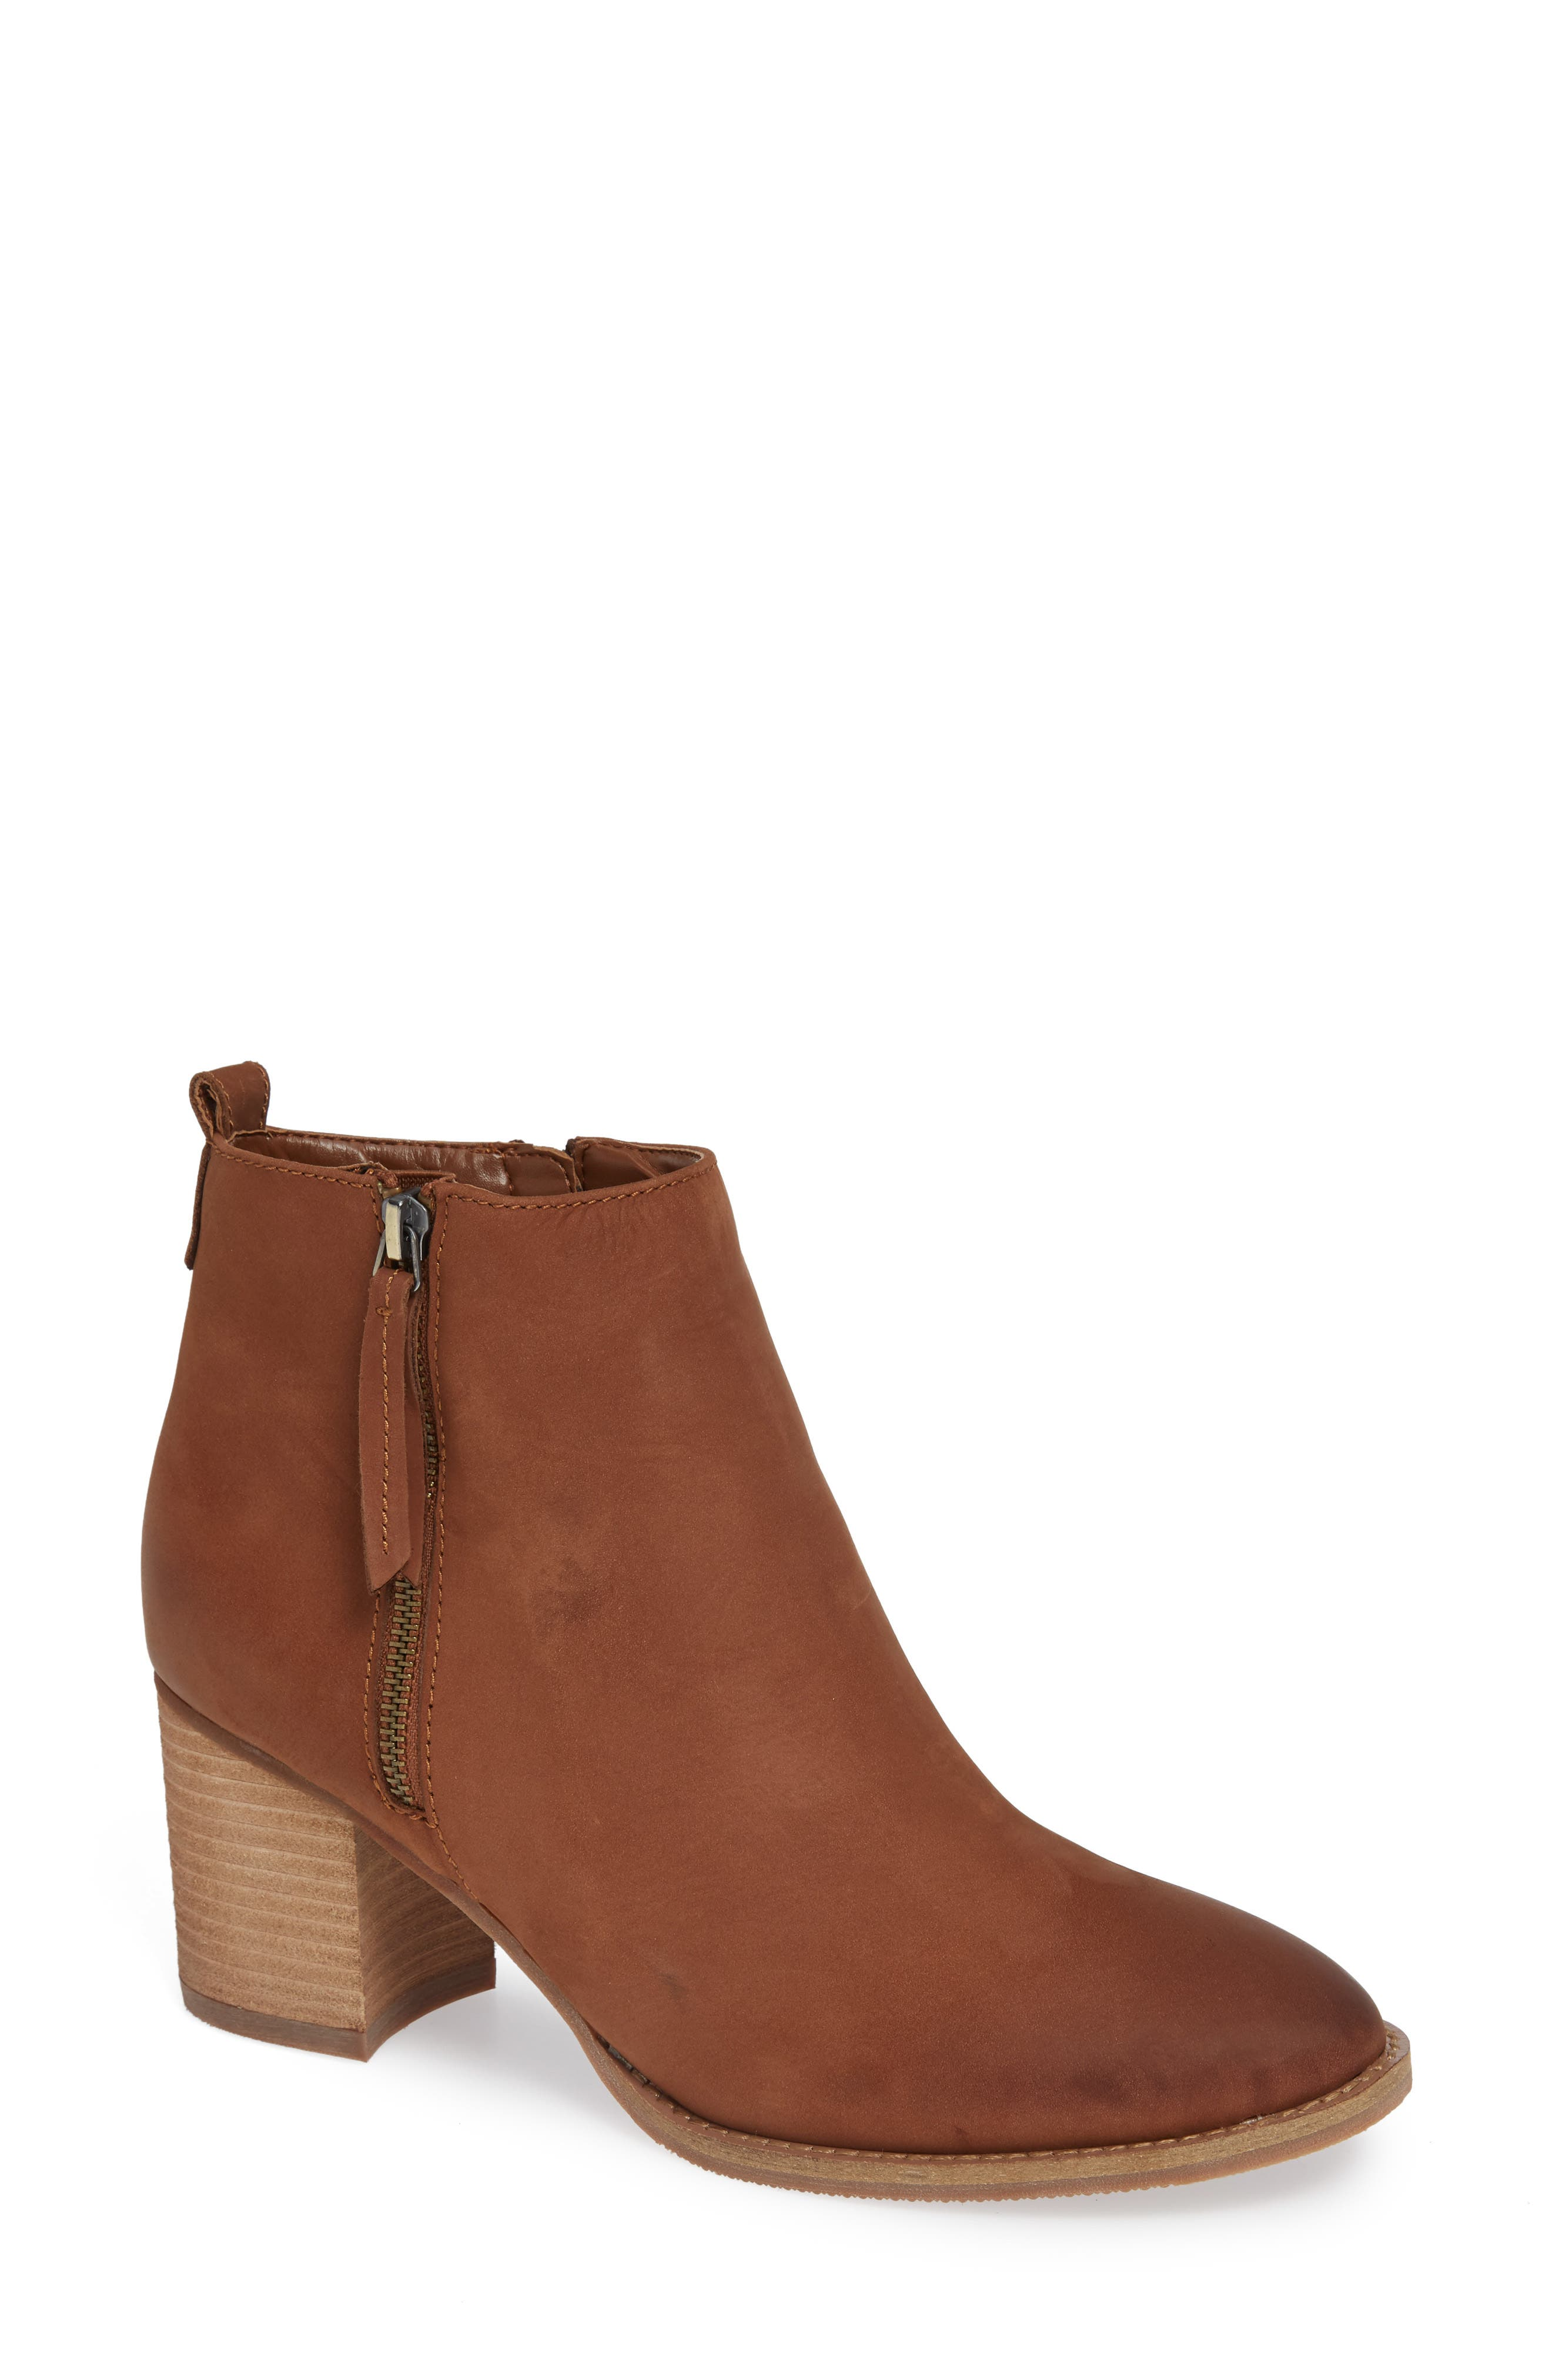 Nova Waterproof Bootie,                             Main thumbnail 1, color,                             COGNAC NUBUCK